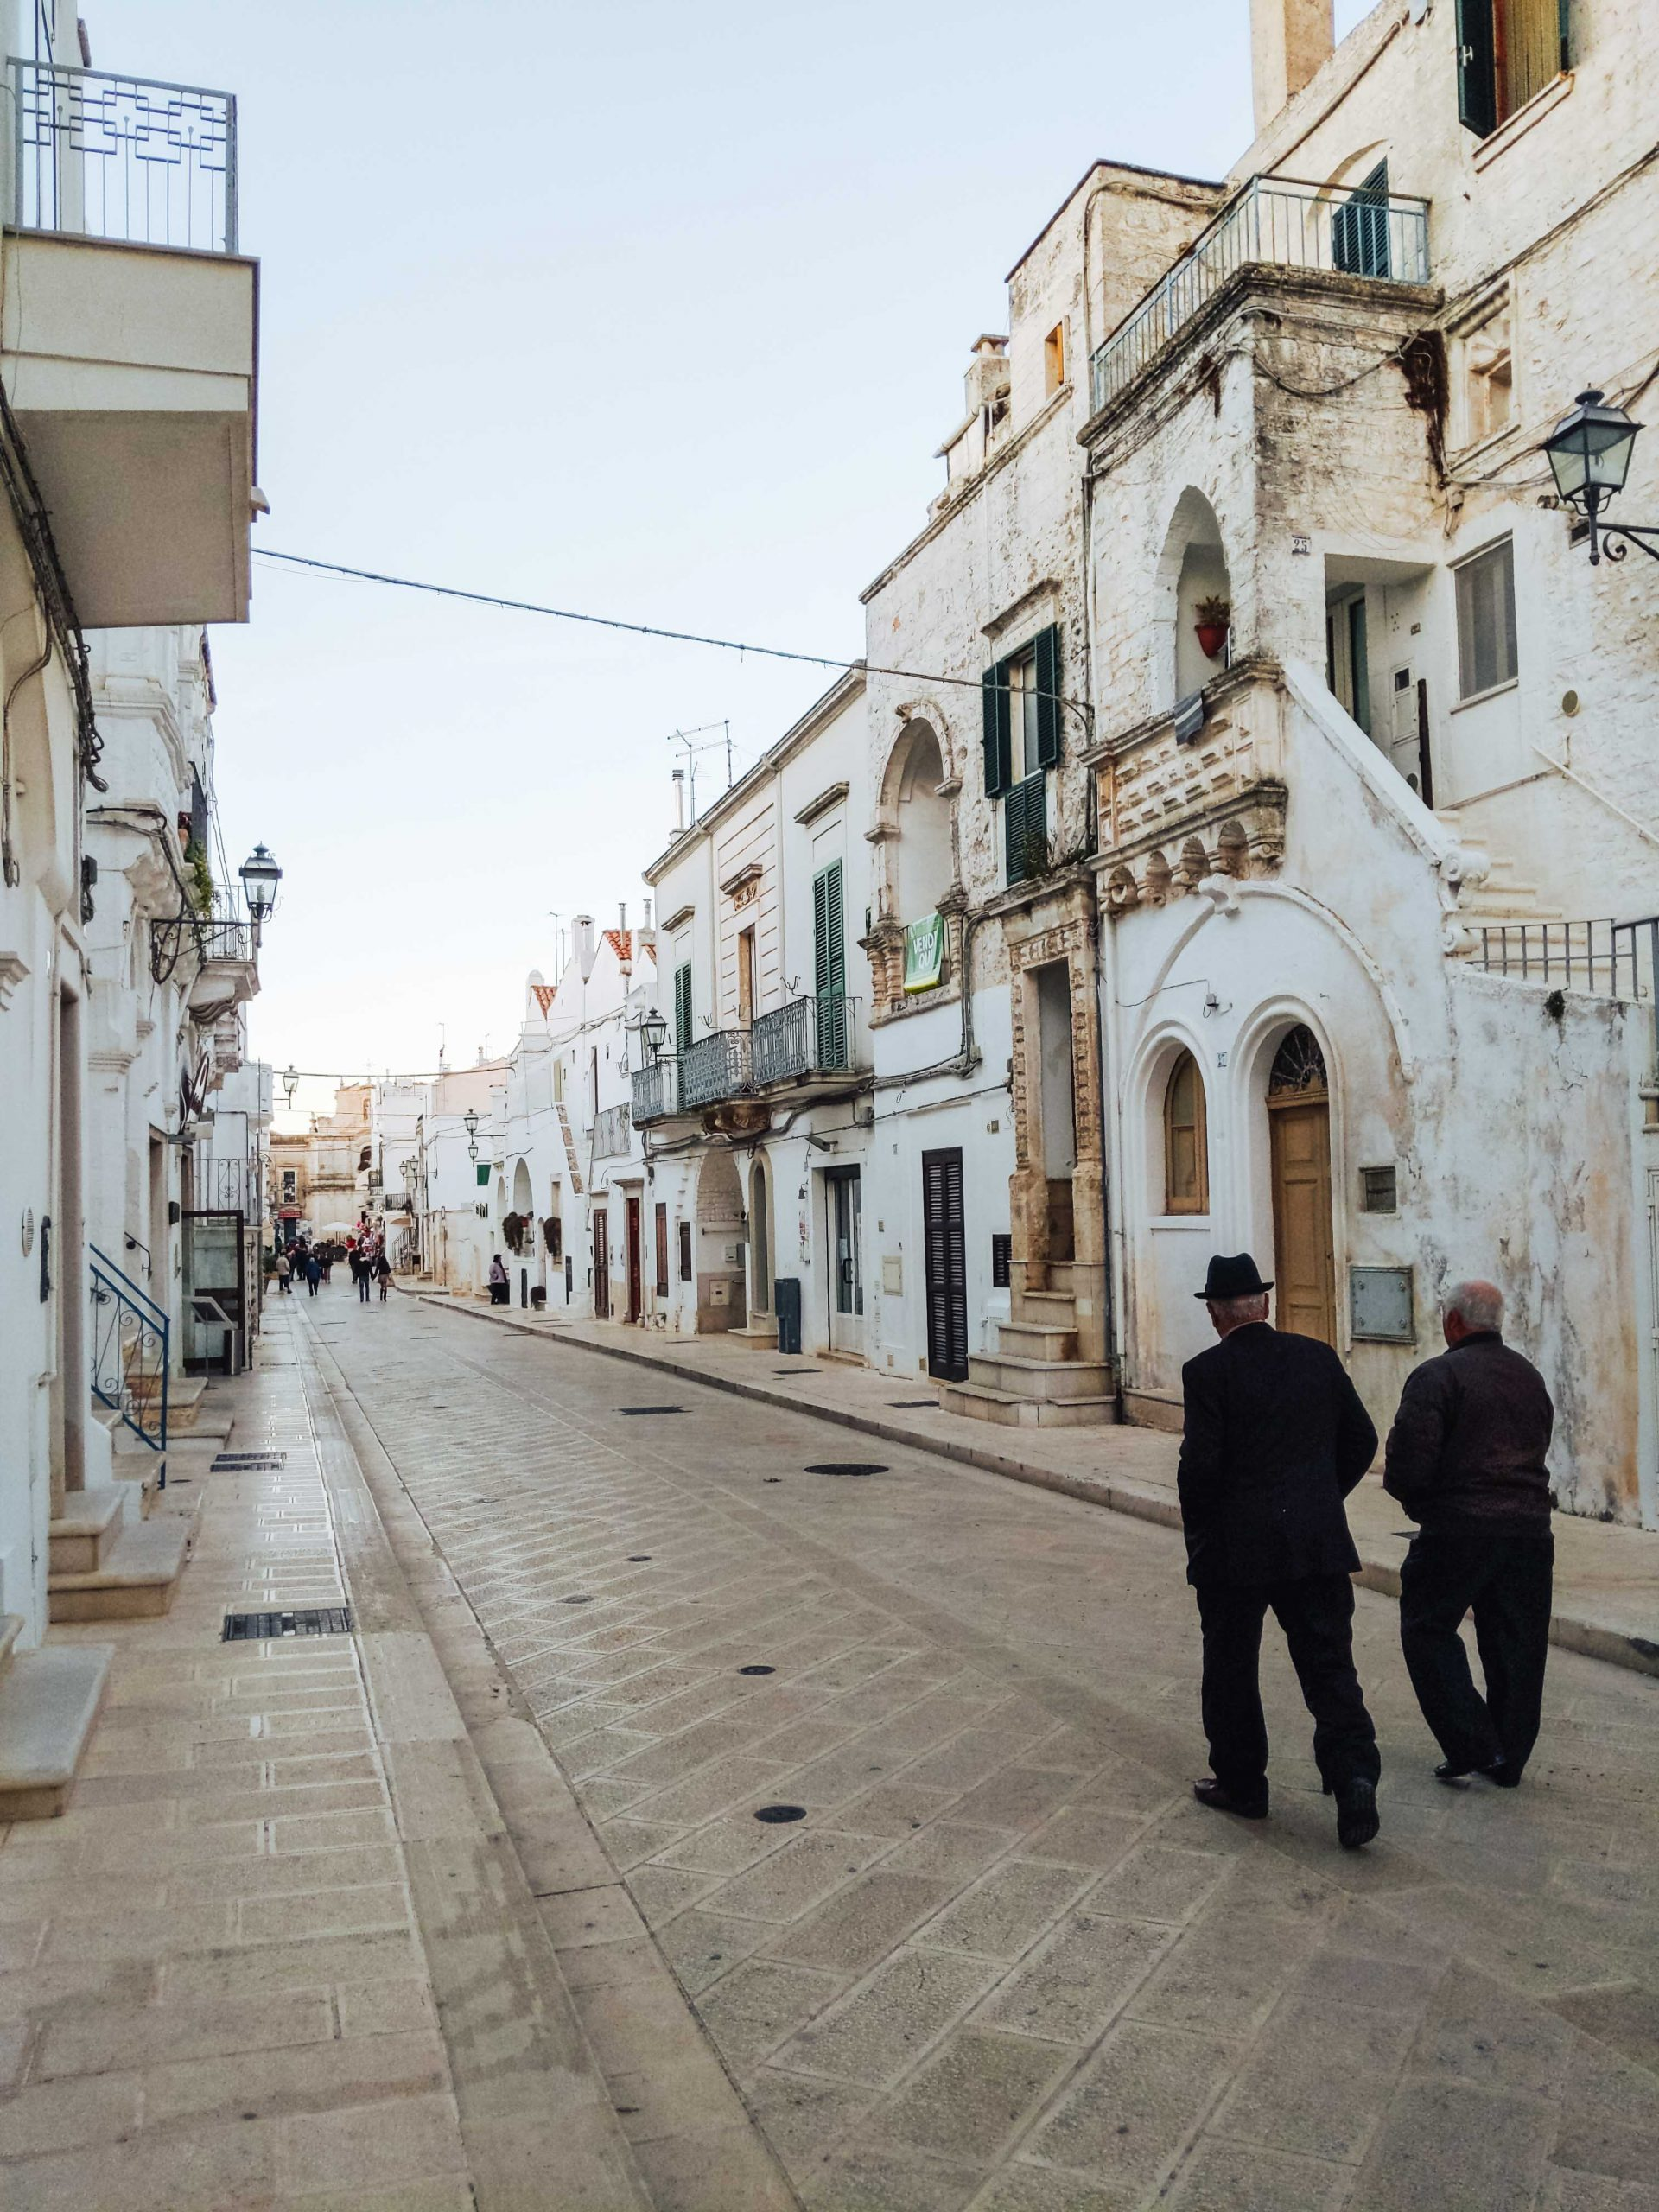 The old town of Cisternino in Valle d'Itria | A 7-day Road Trip Through Puglia | Mondomulia